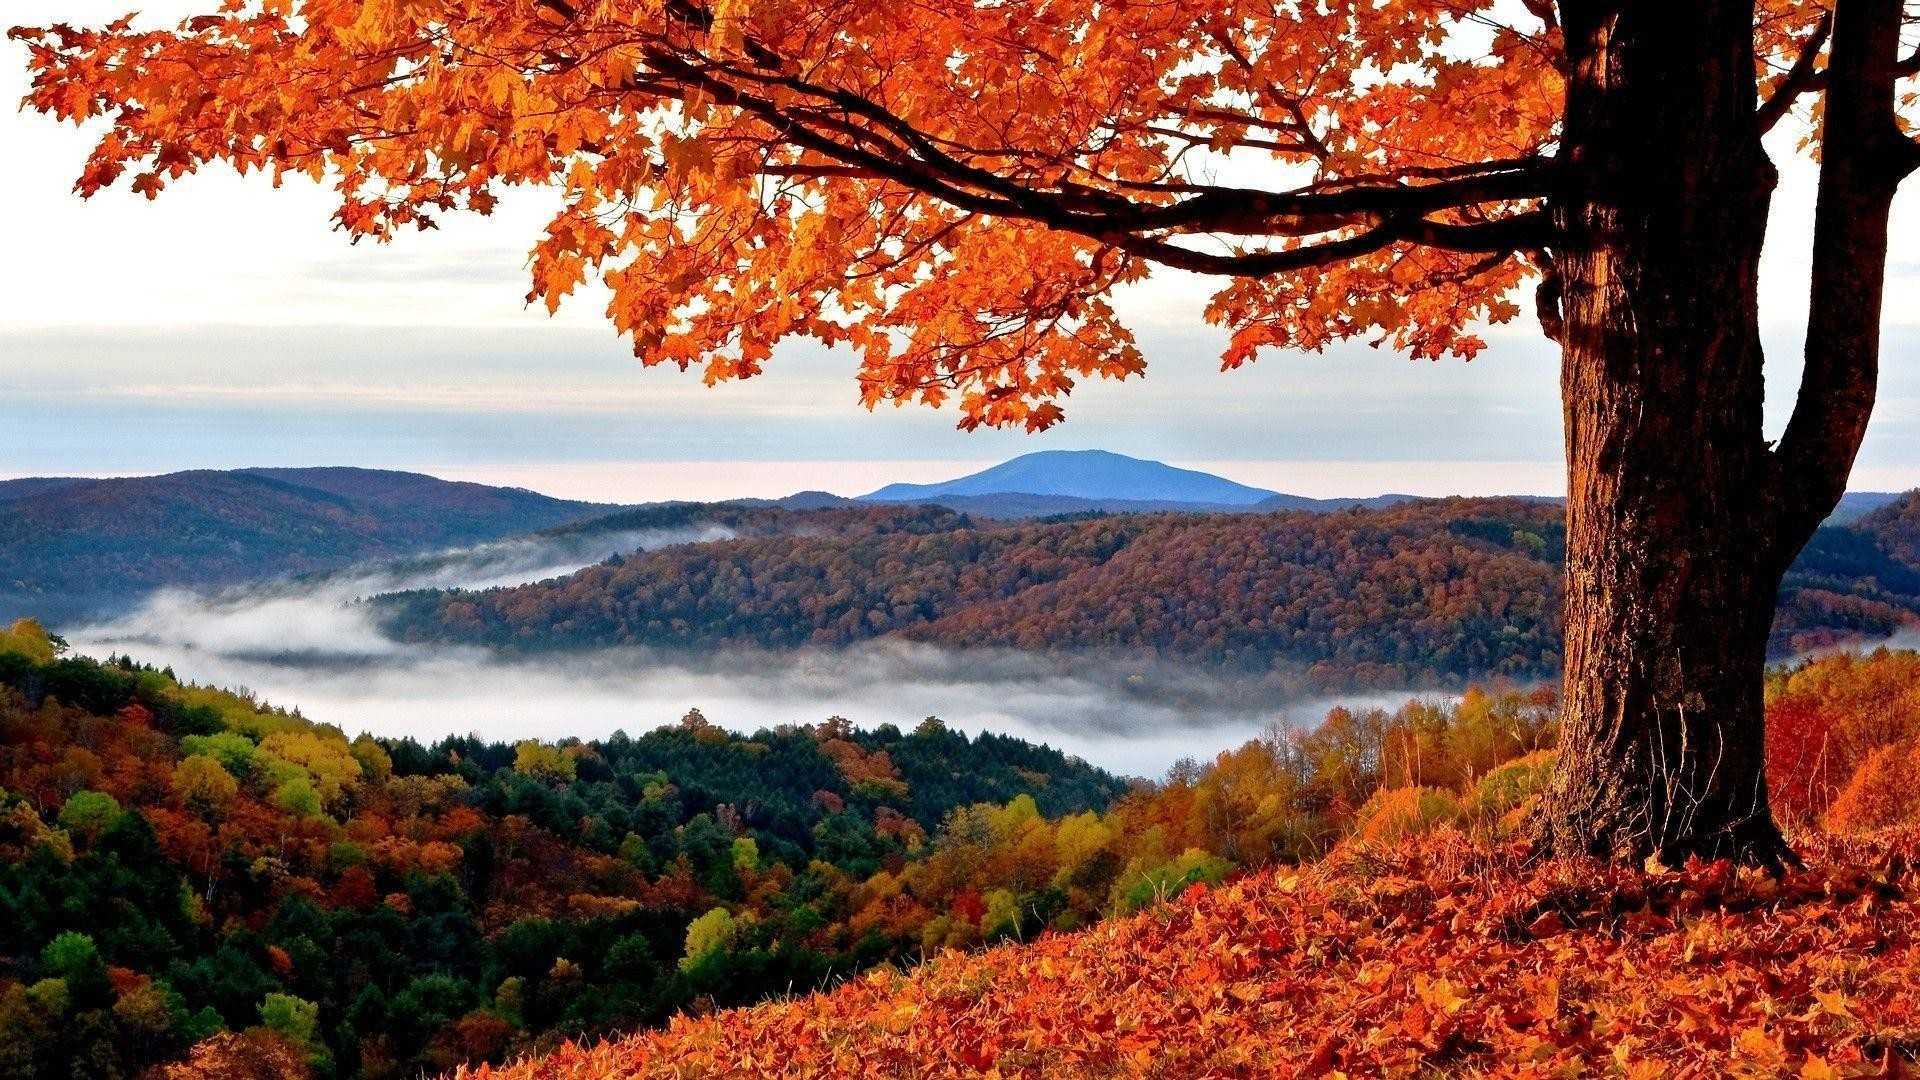 Fall Autumn Hd Wallpaper 1920x1080 Free 1920x1080 Hd Autumn Wallpapers 61 Images